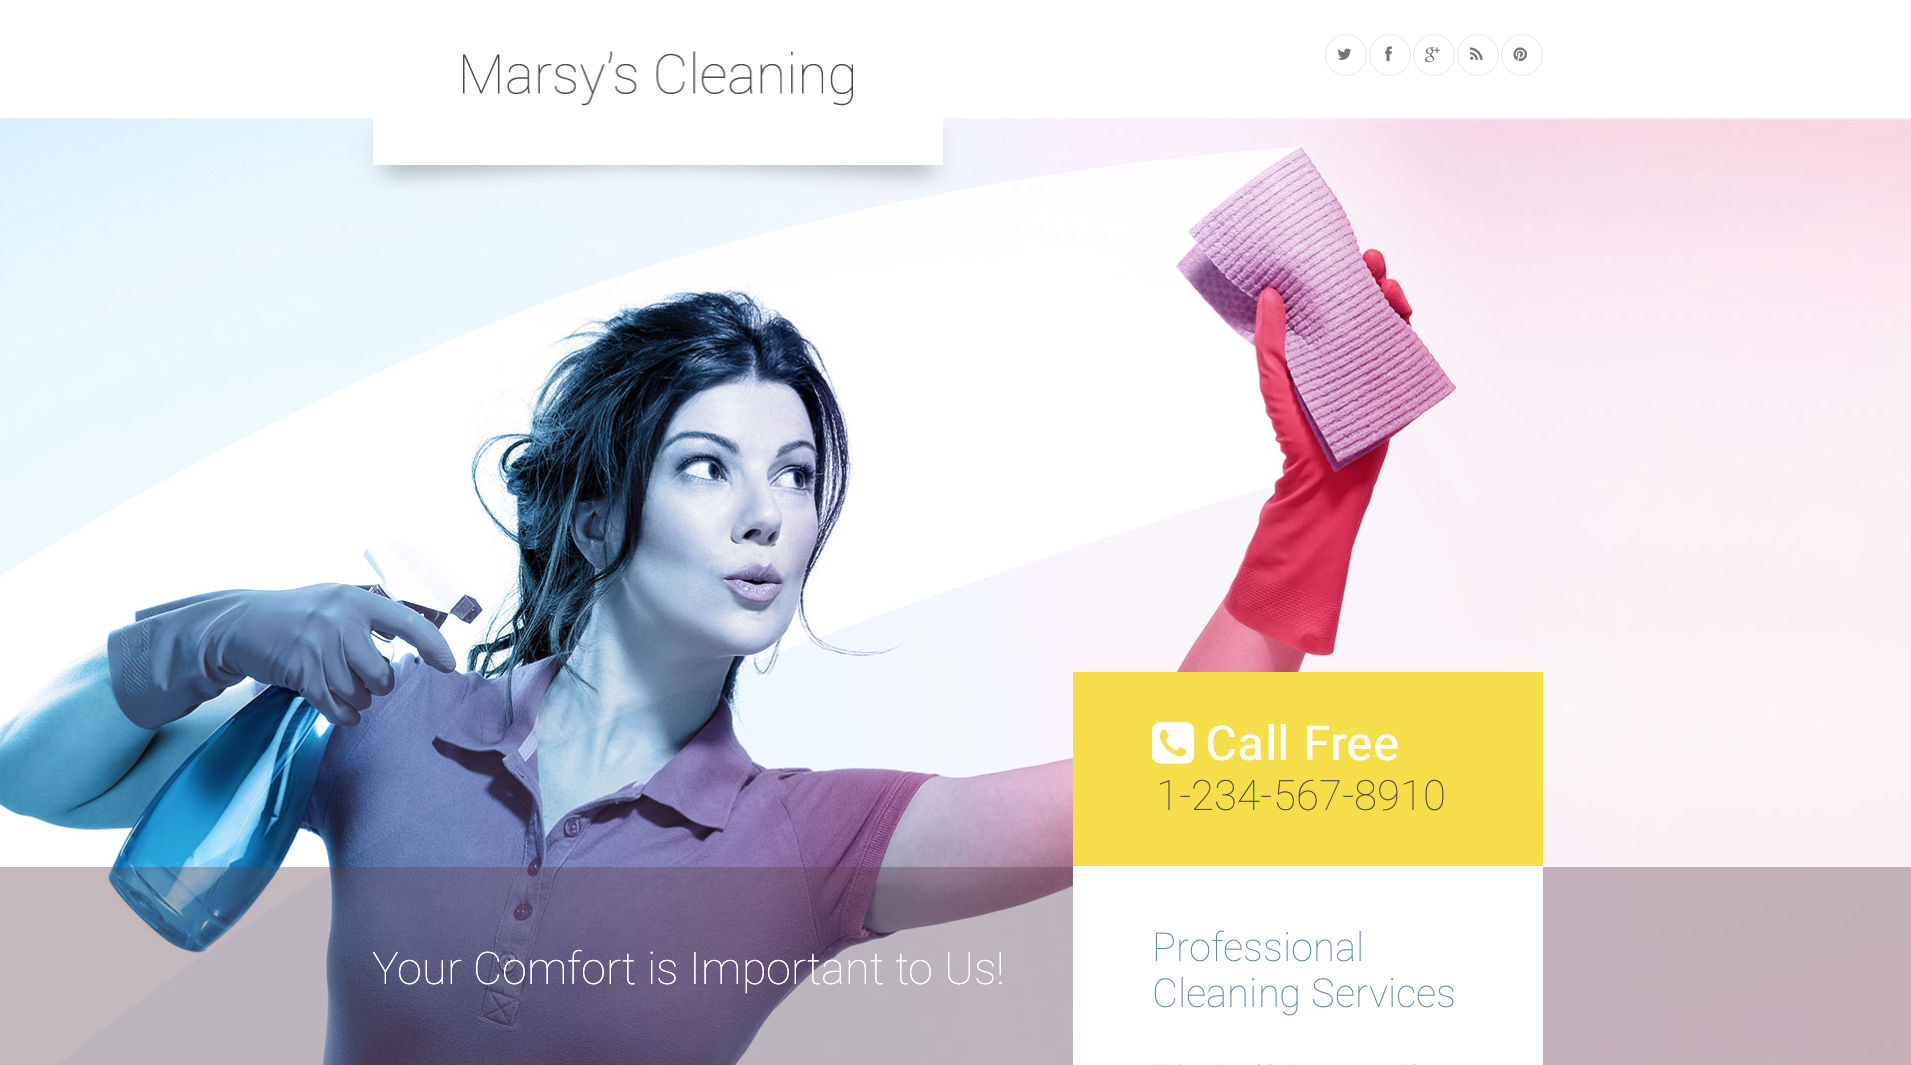 Mary's cleaning - word press theme for women